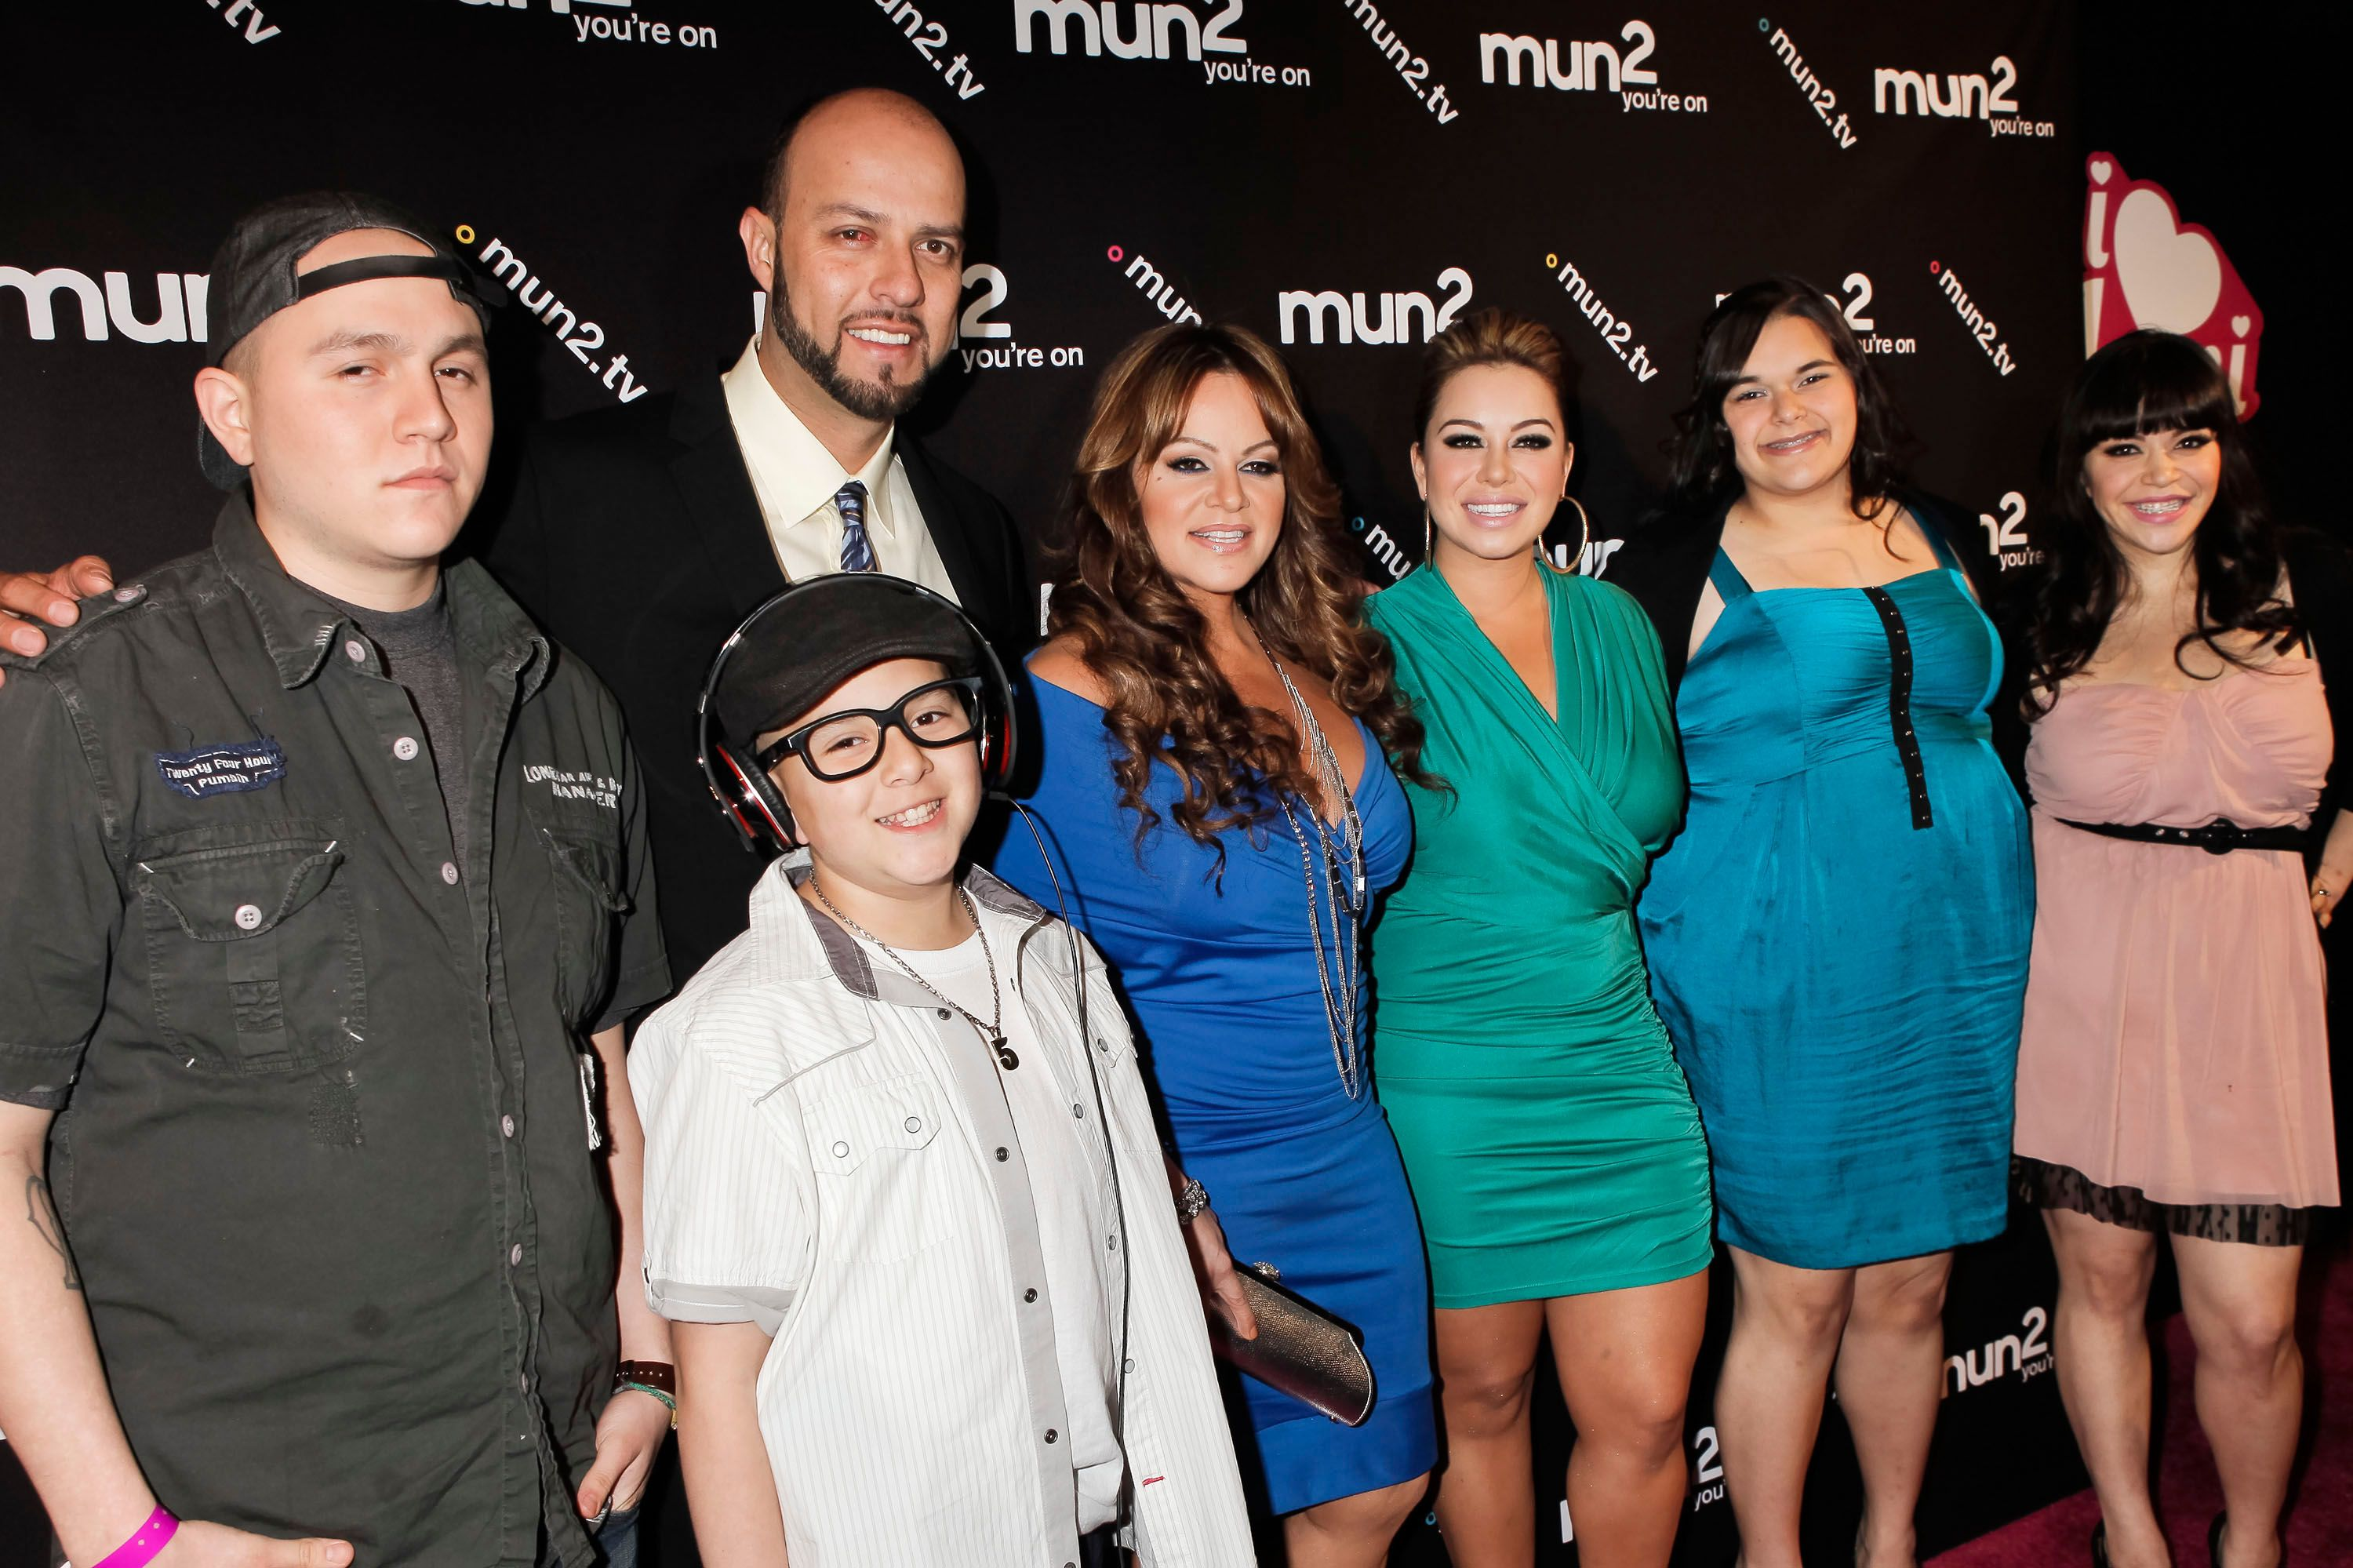 Jenni Rivera and Esteban Loaiza, with her children Johnny Lopez, Janney 'Chiquis' Marin, Jenicka Lopez and Jacqui Marin at the premiere of 'I Love Jenni' Season 2 in 2012 in Hollywood, California | Source: Getty Images